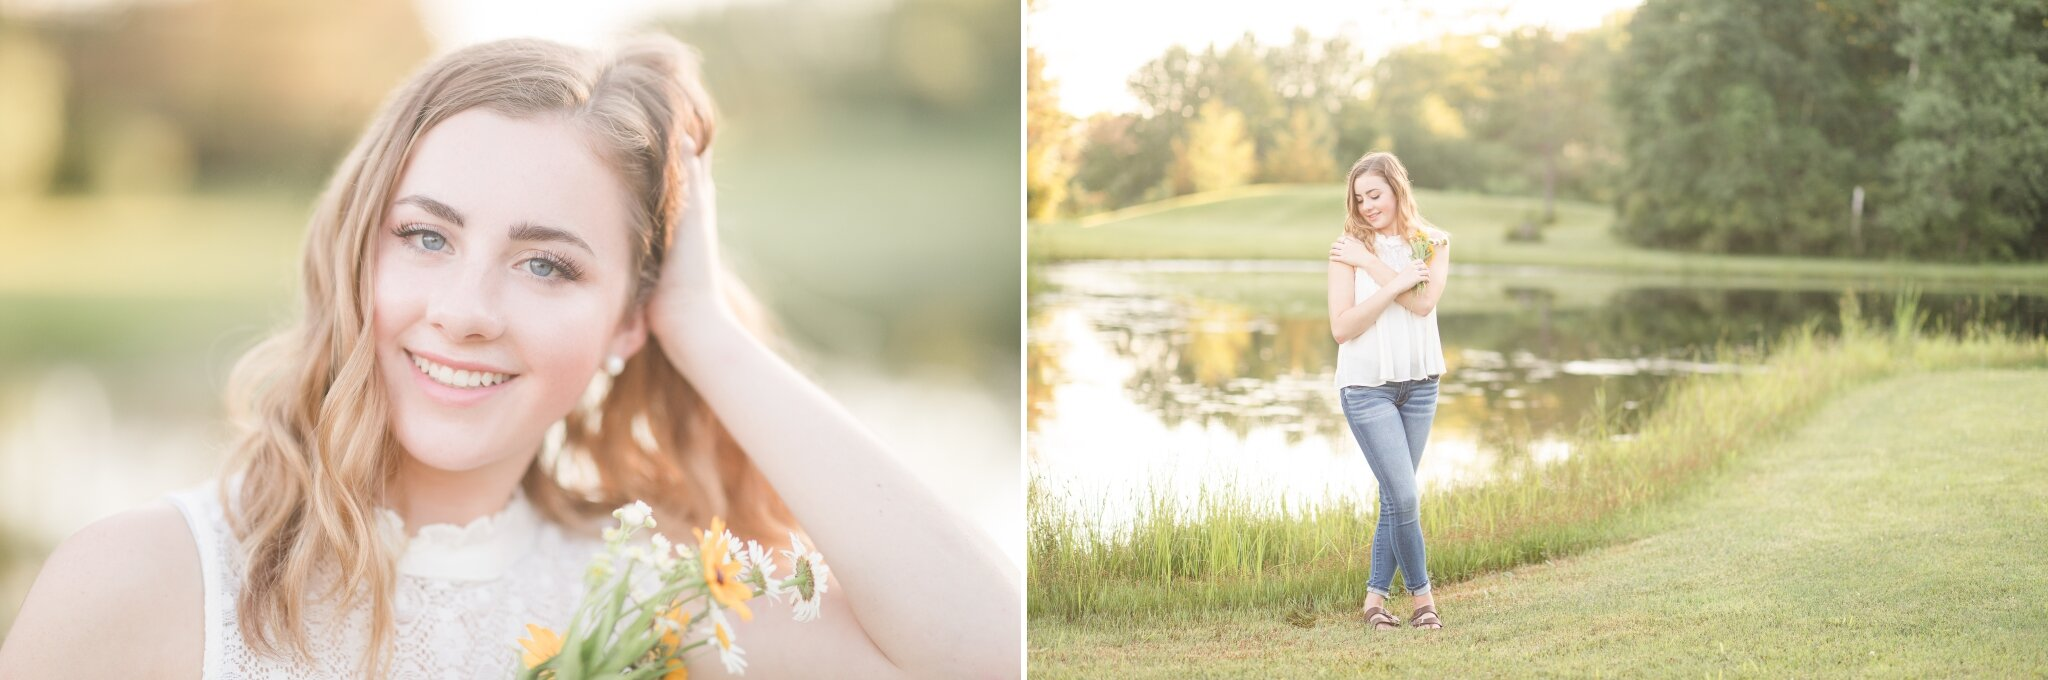 Senior Pictures by a pond with Wildflowers in Appleton WI